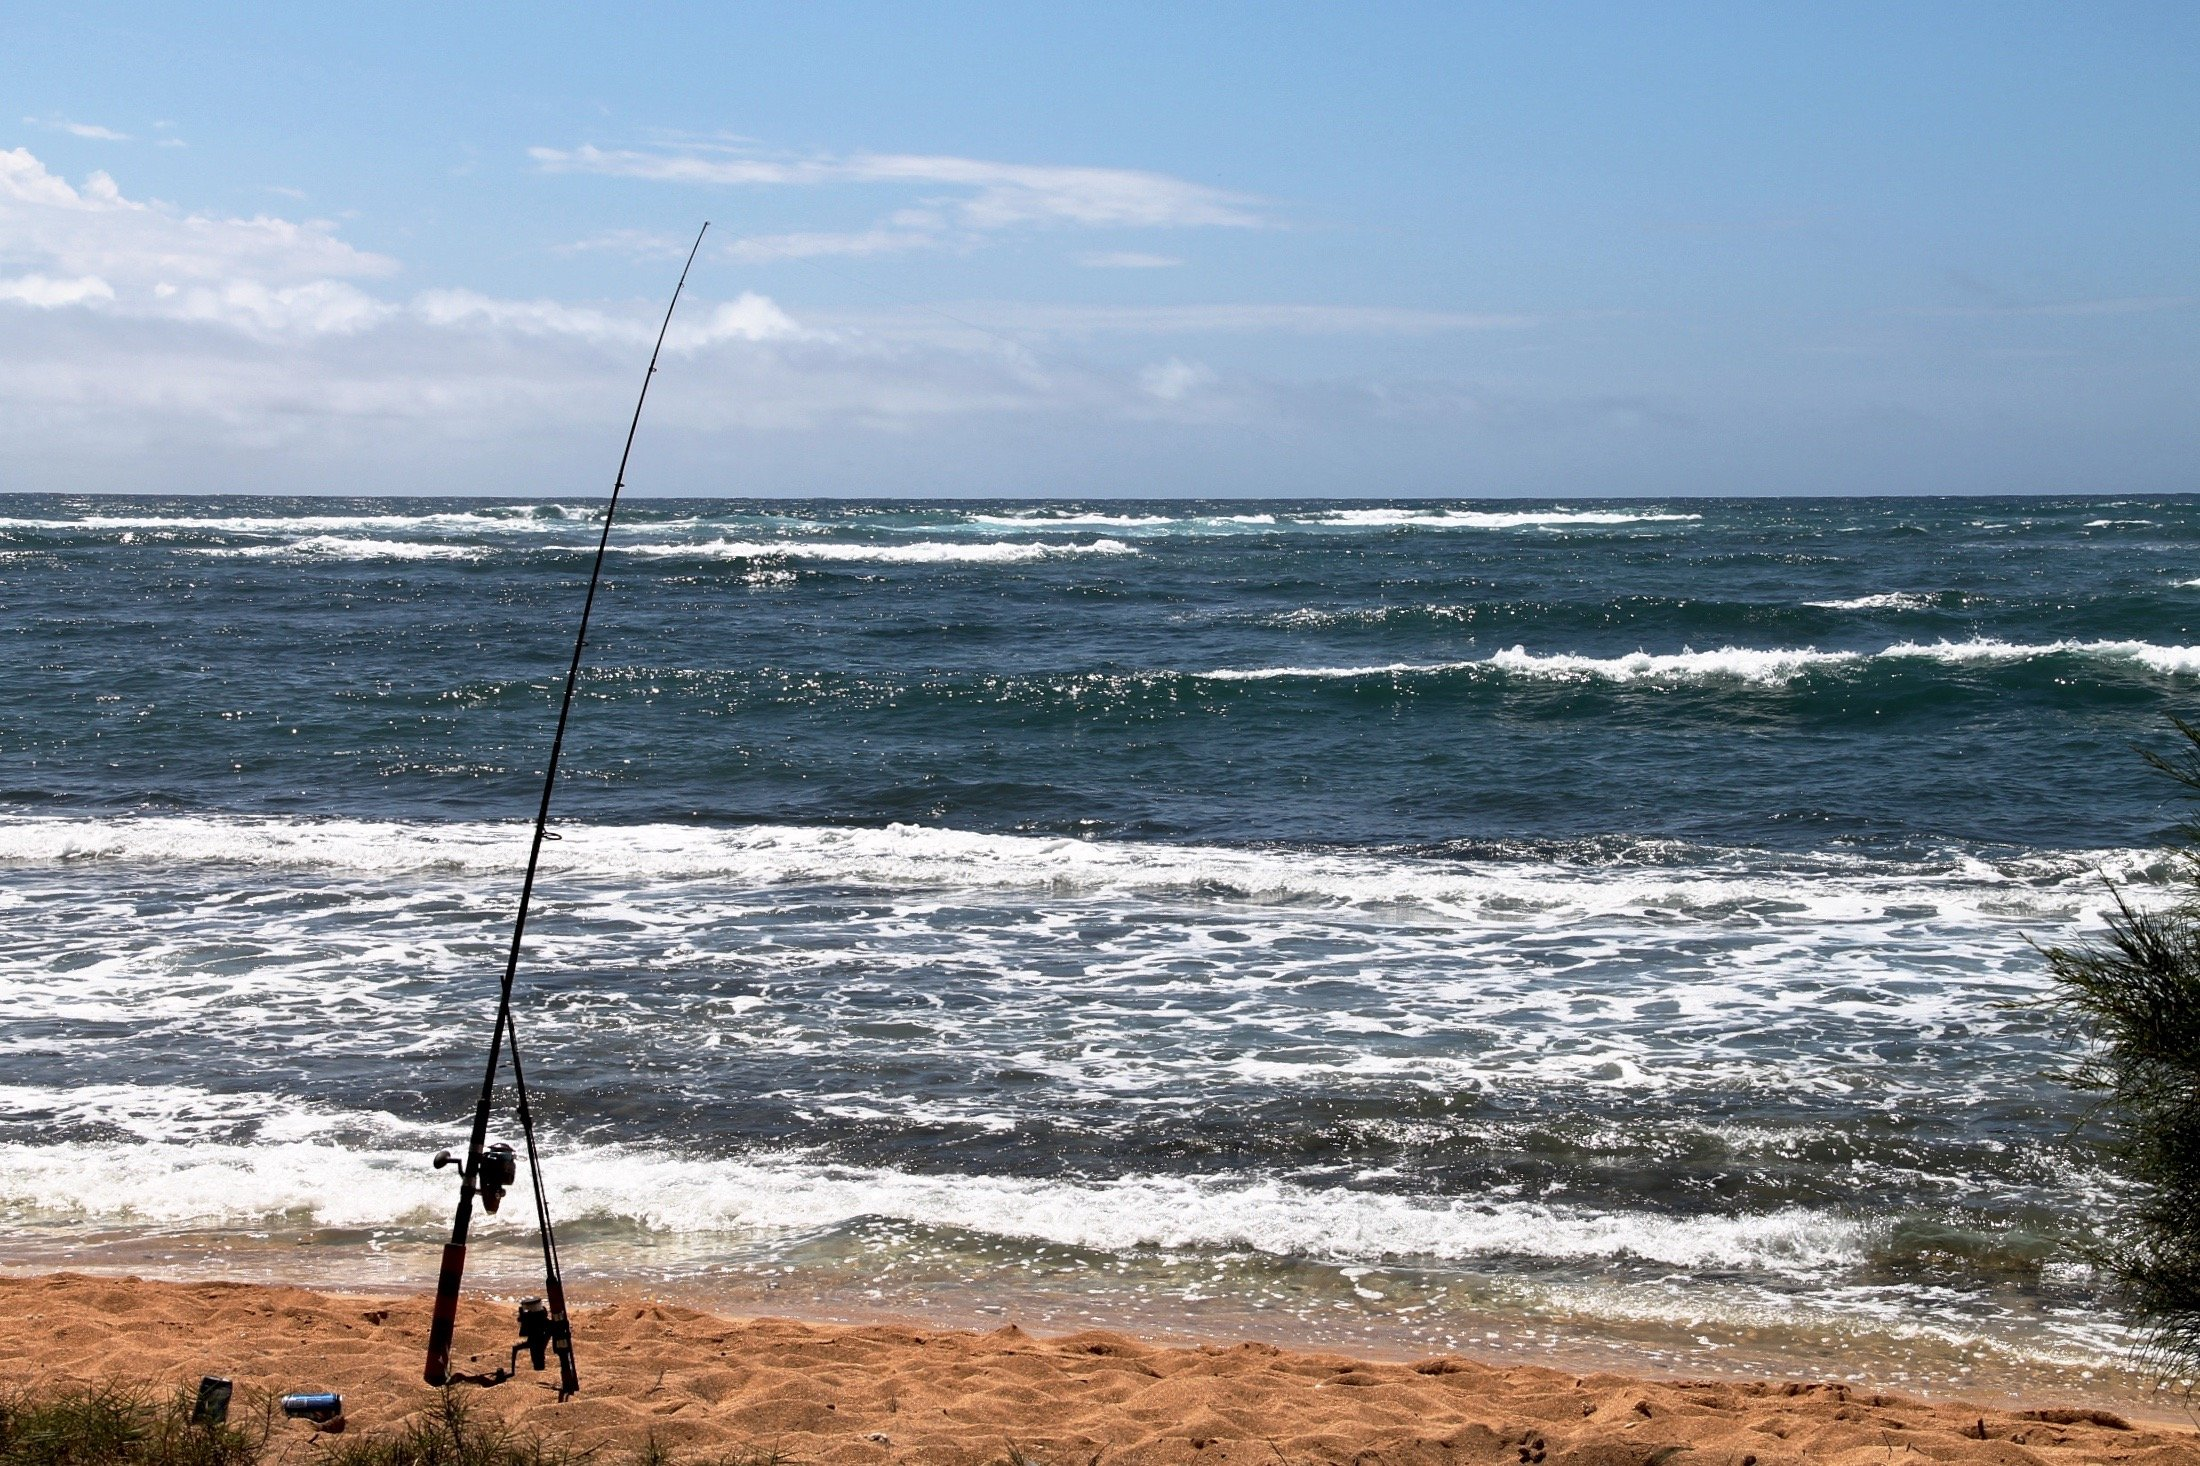 Fishing Pole on Beach at Ocean